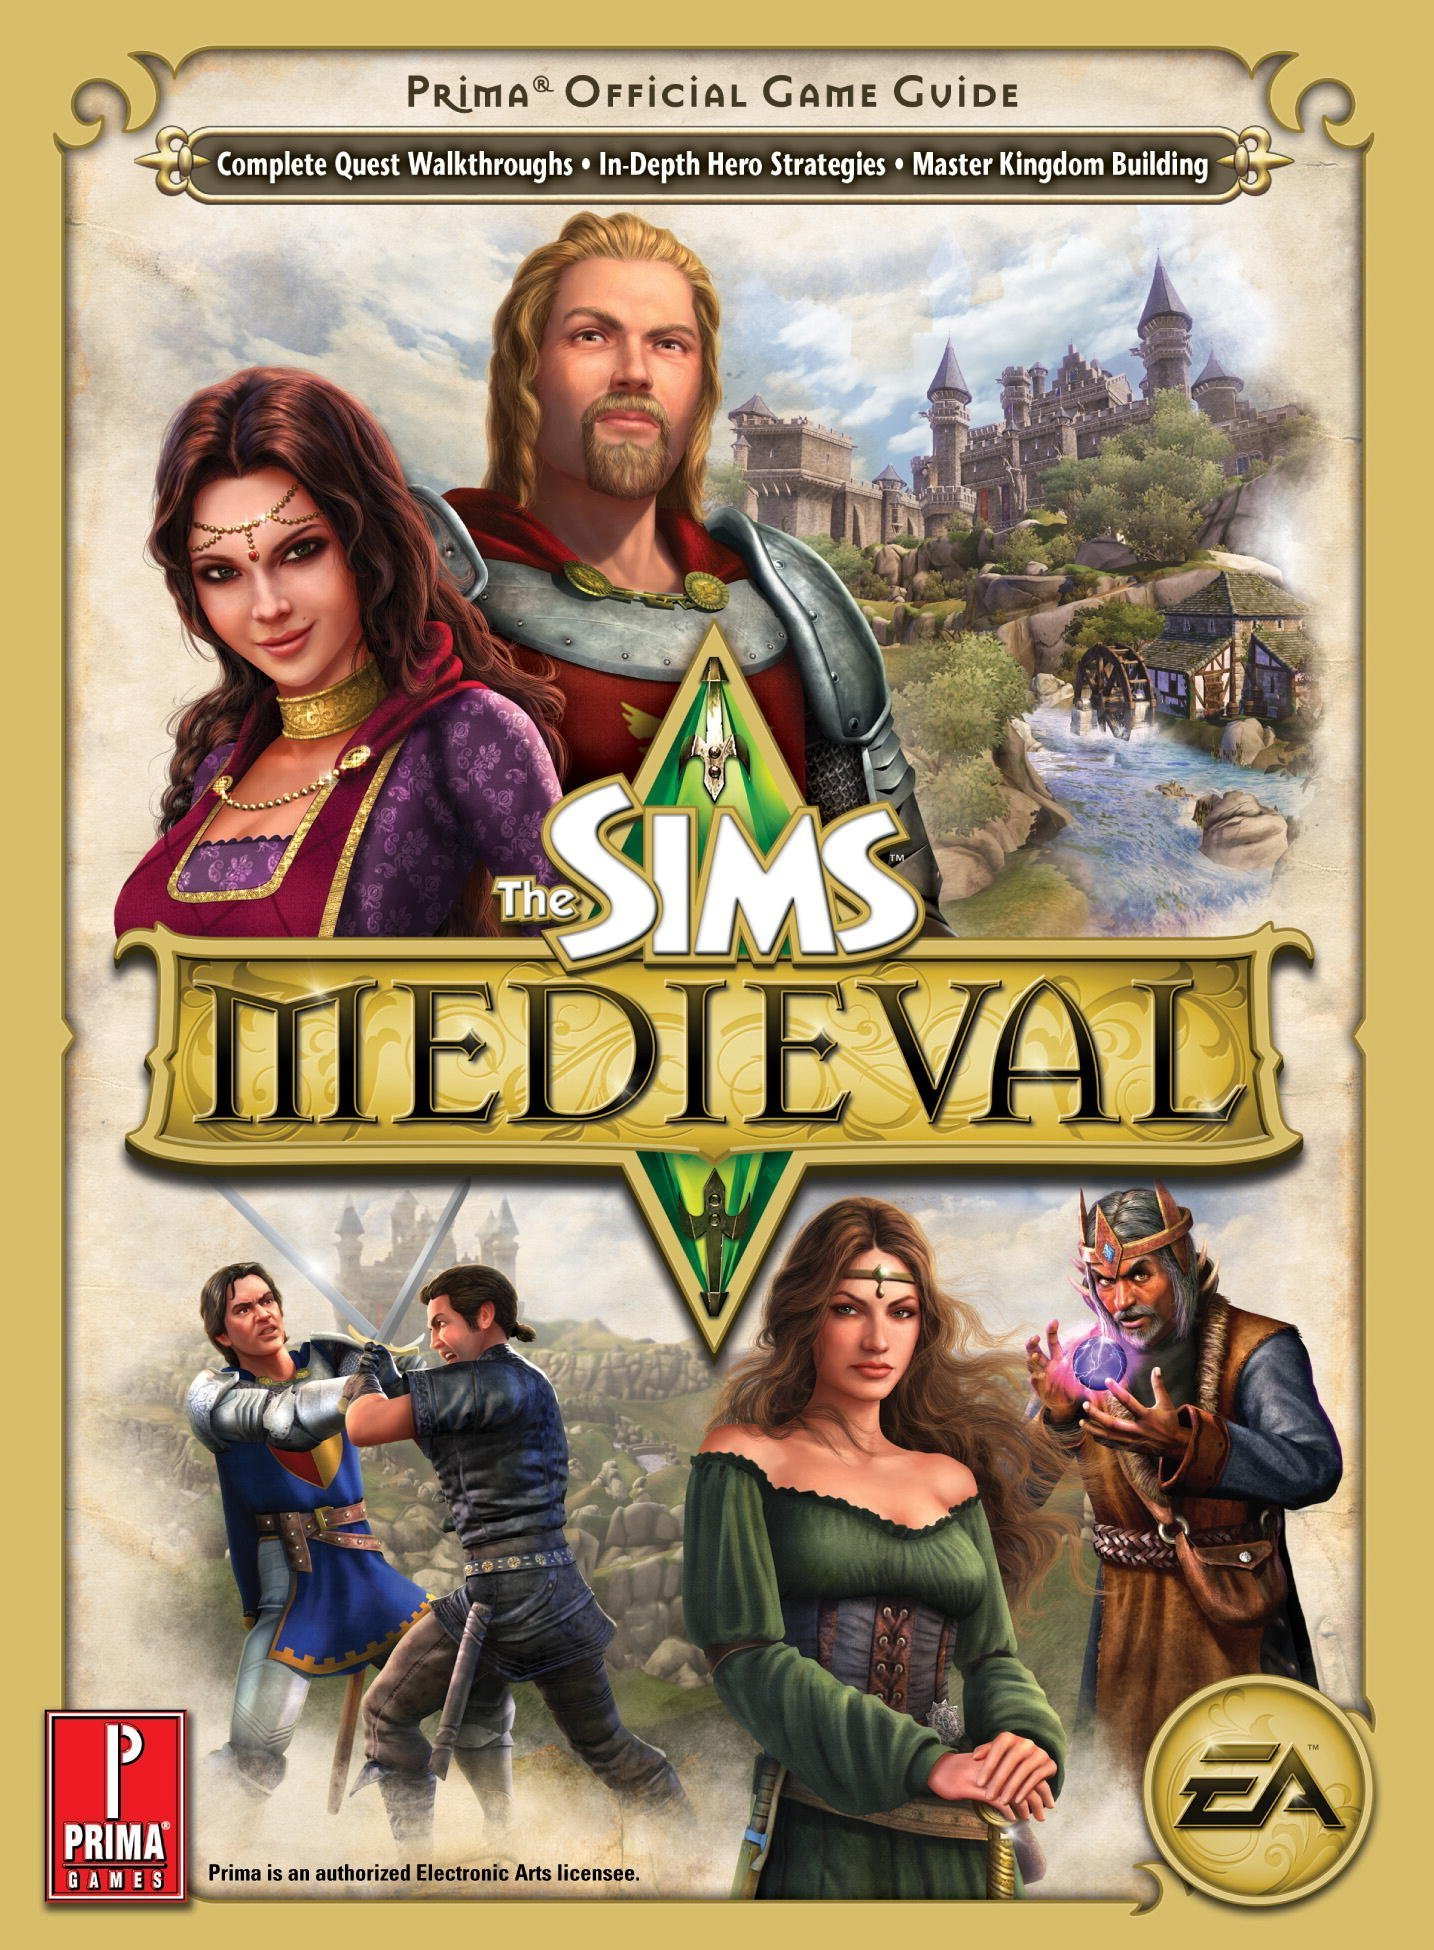 The Sims Medieval Official Game Guide